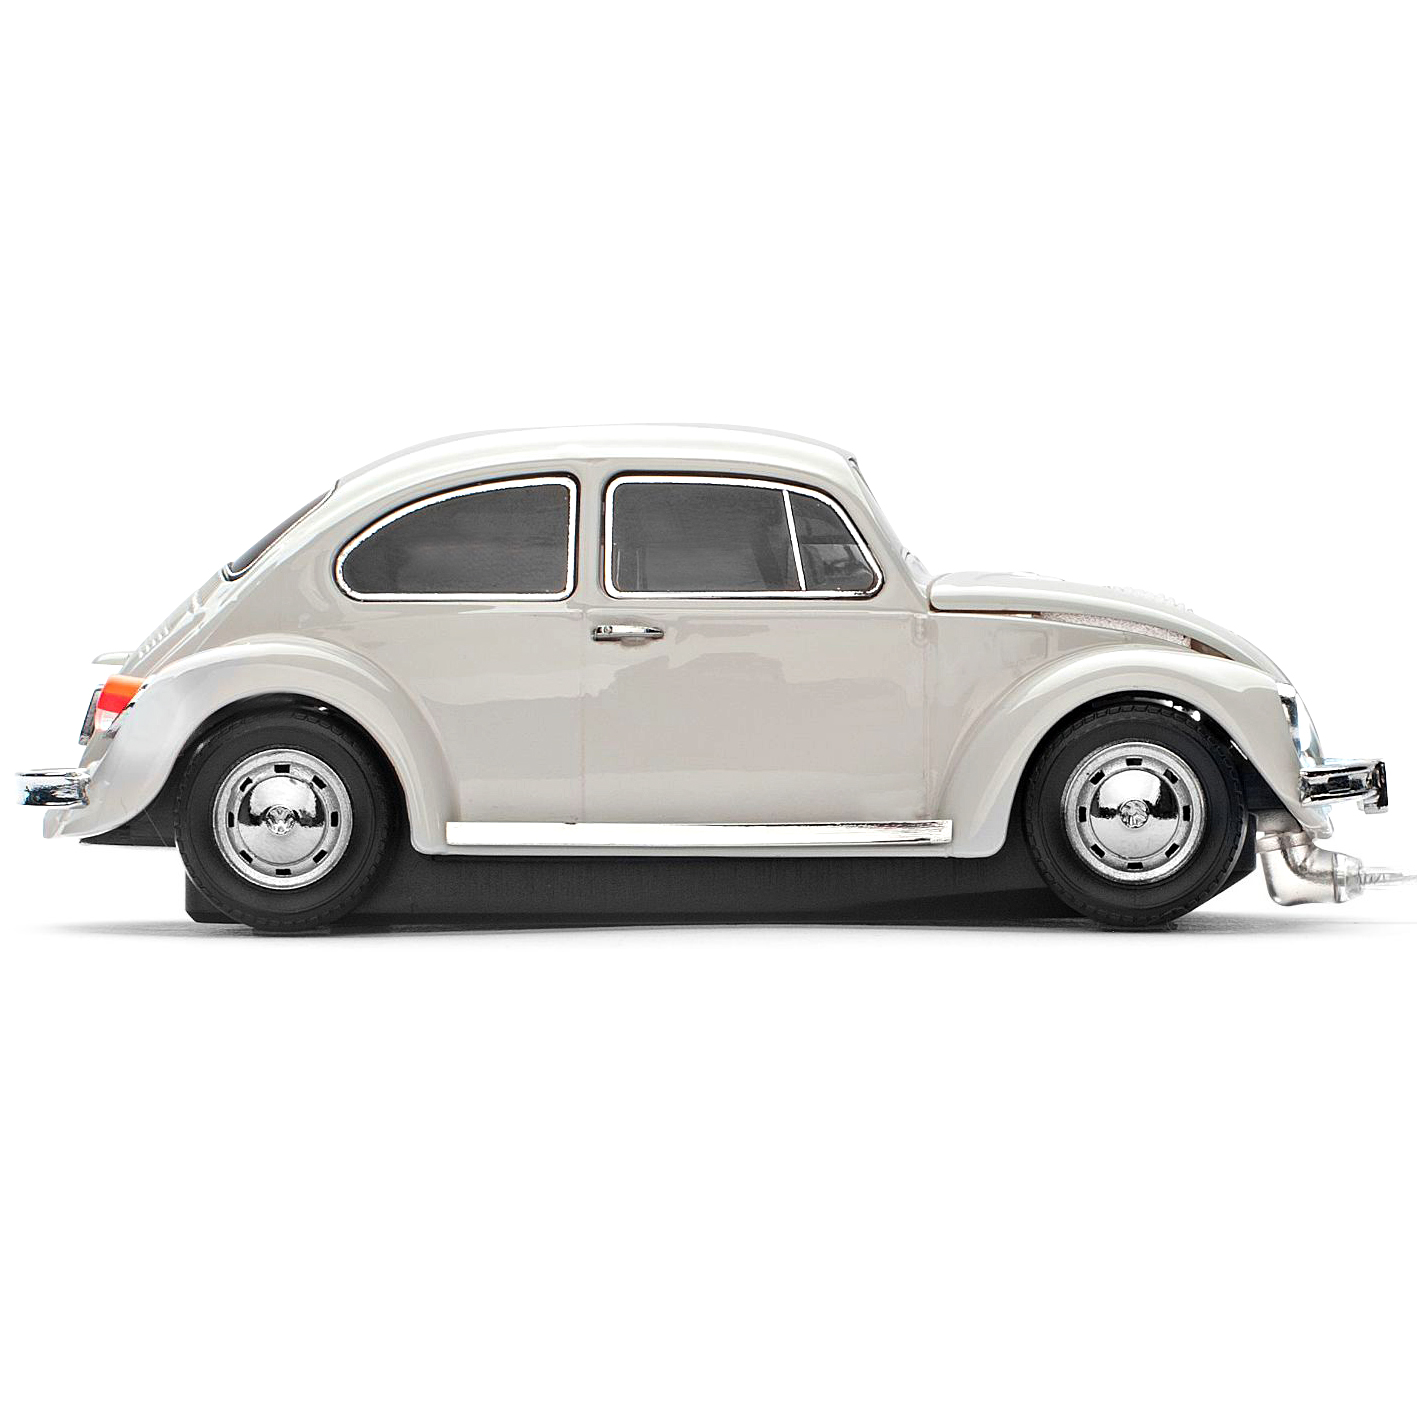 Vw Beetle Classic Car: Official Classic VW Beetle Car Wired Computer Mouse